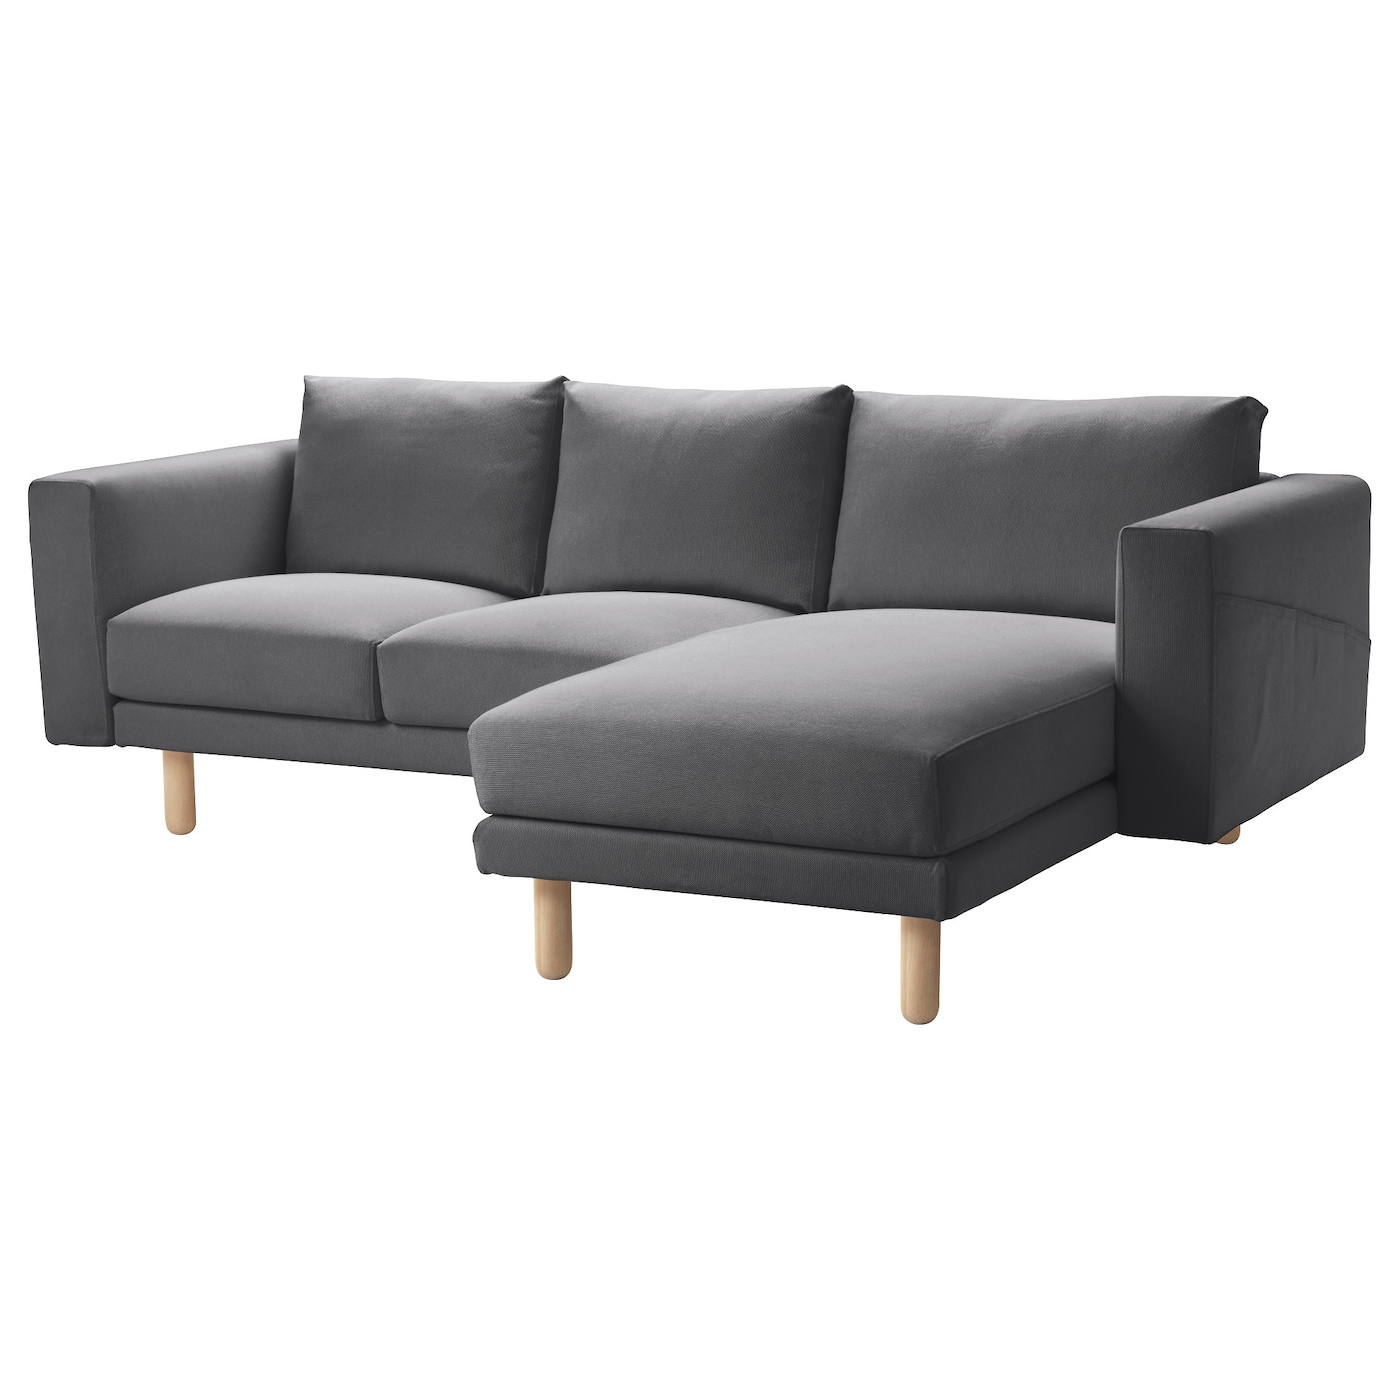 Norsborg two seat sofa with chaise longue finnsta dark for 2 seater sofa with chaise